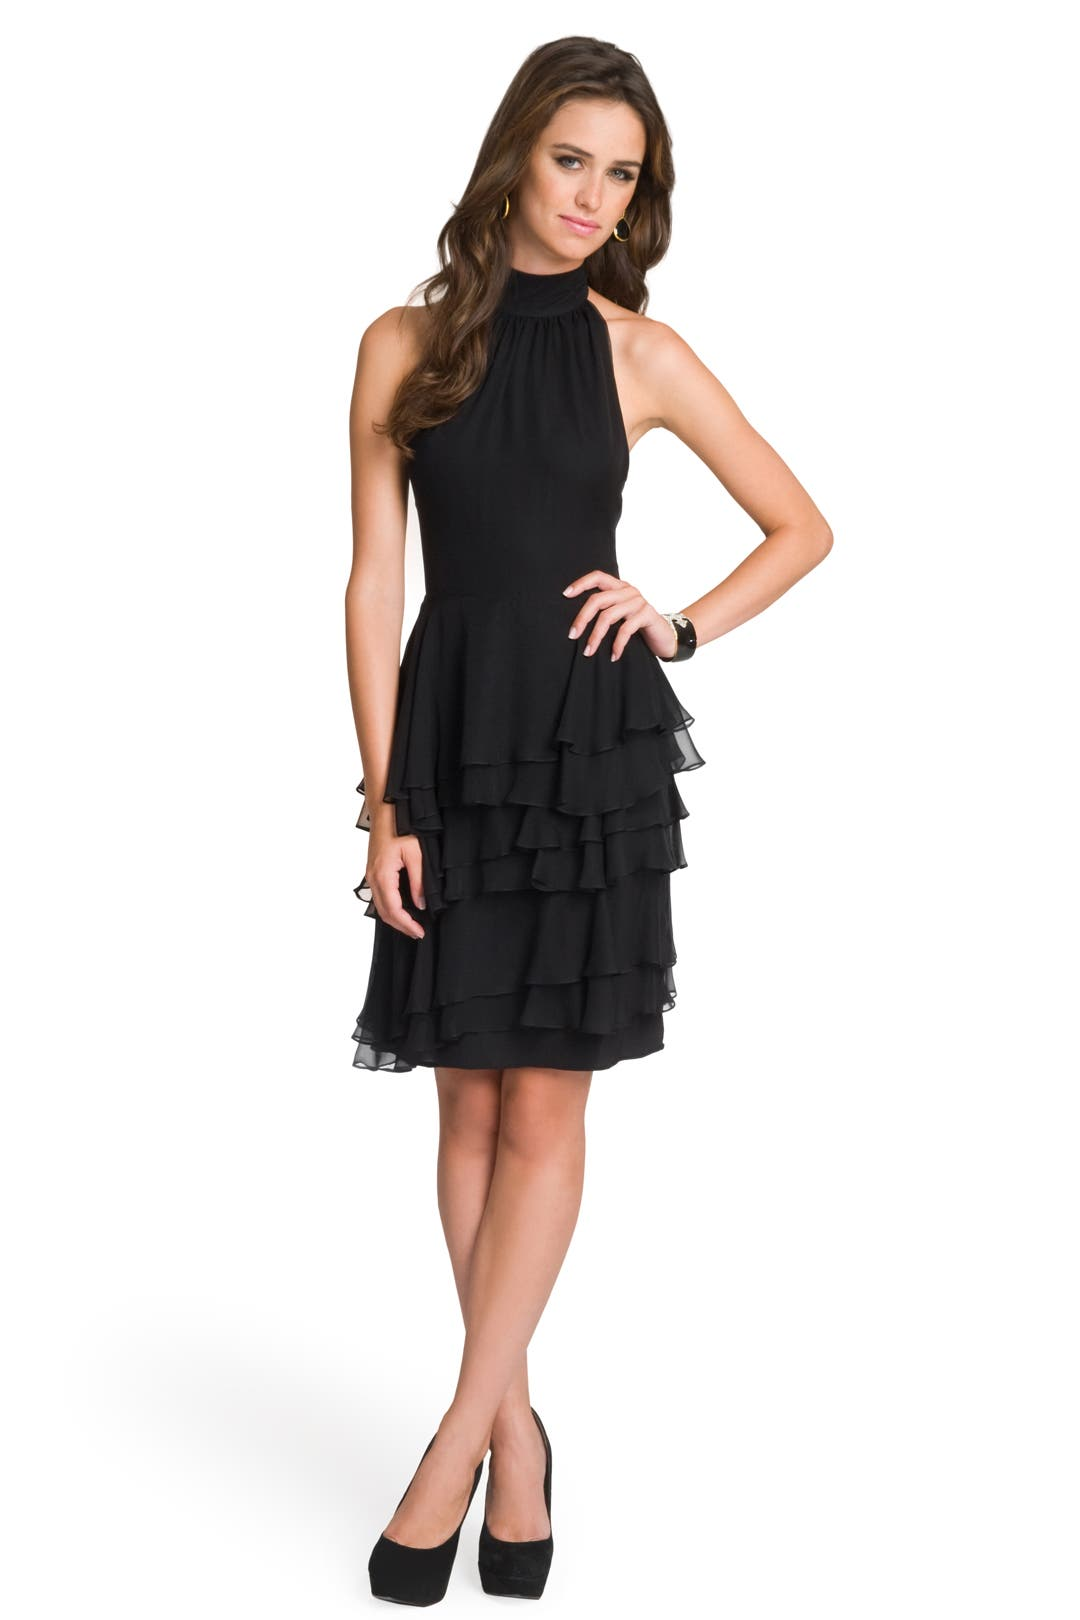 Ruffled Sophisticate Halter Dress by Christian Siriano